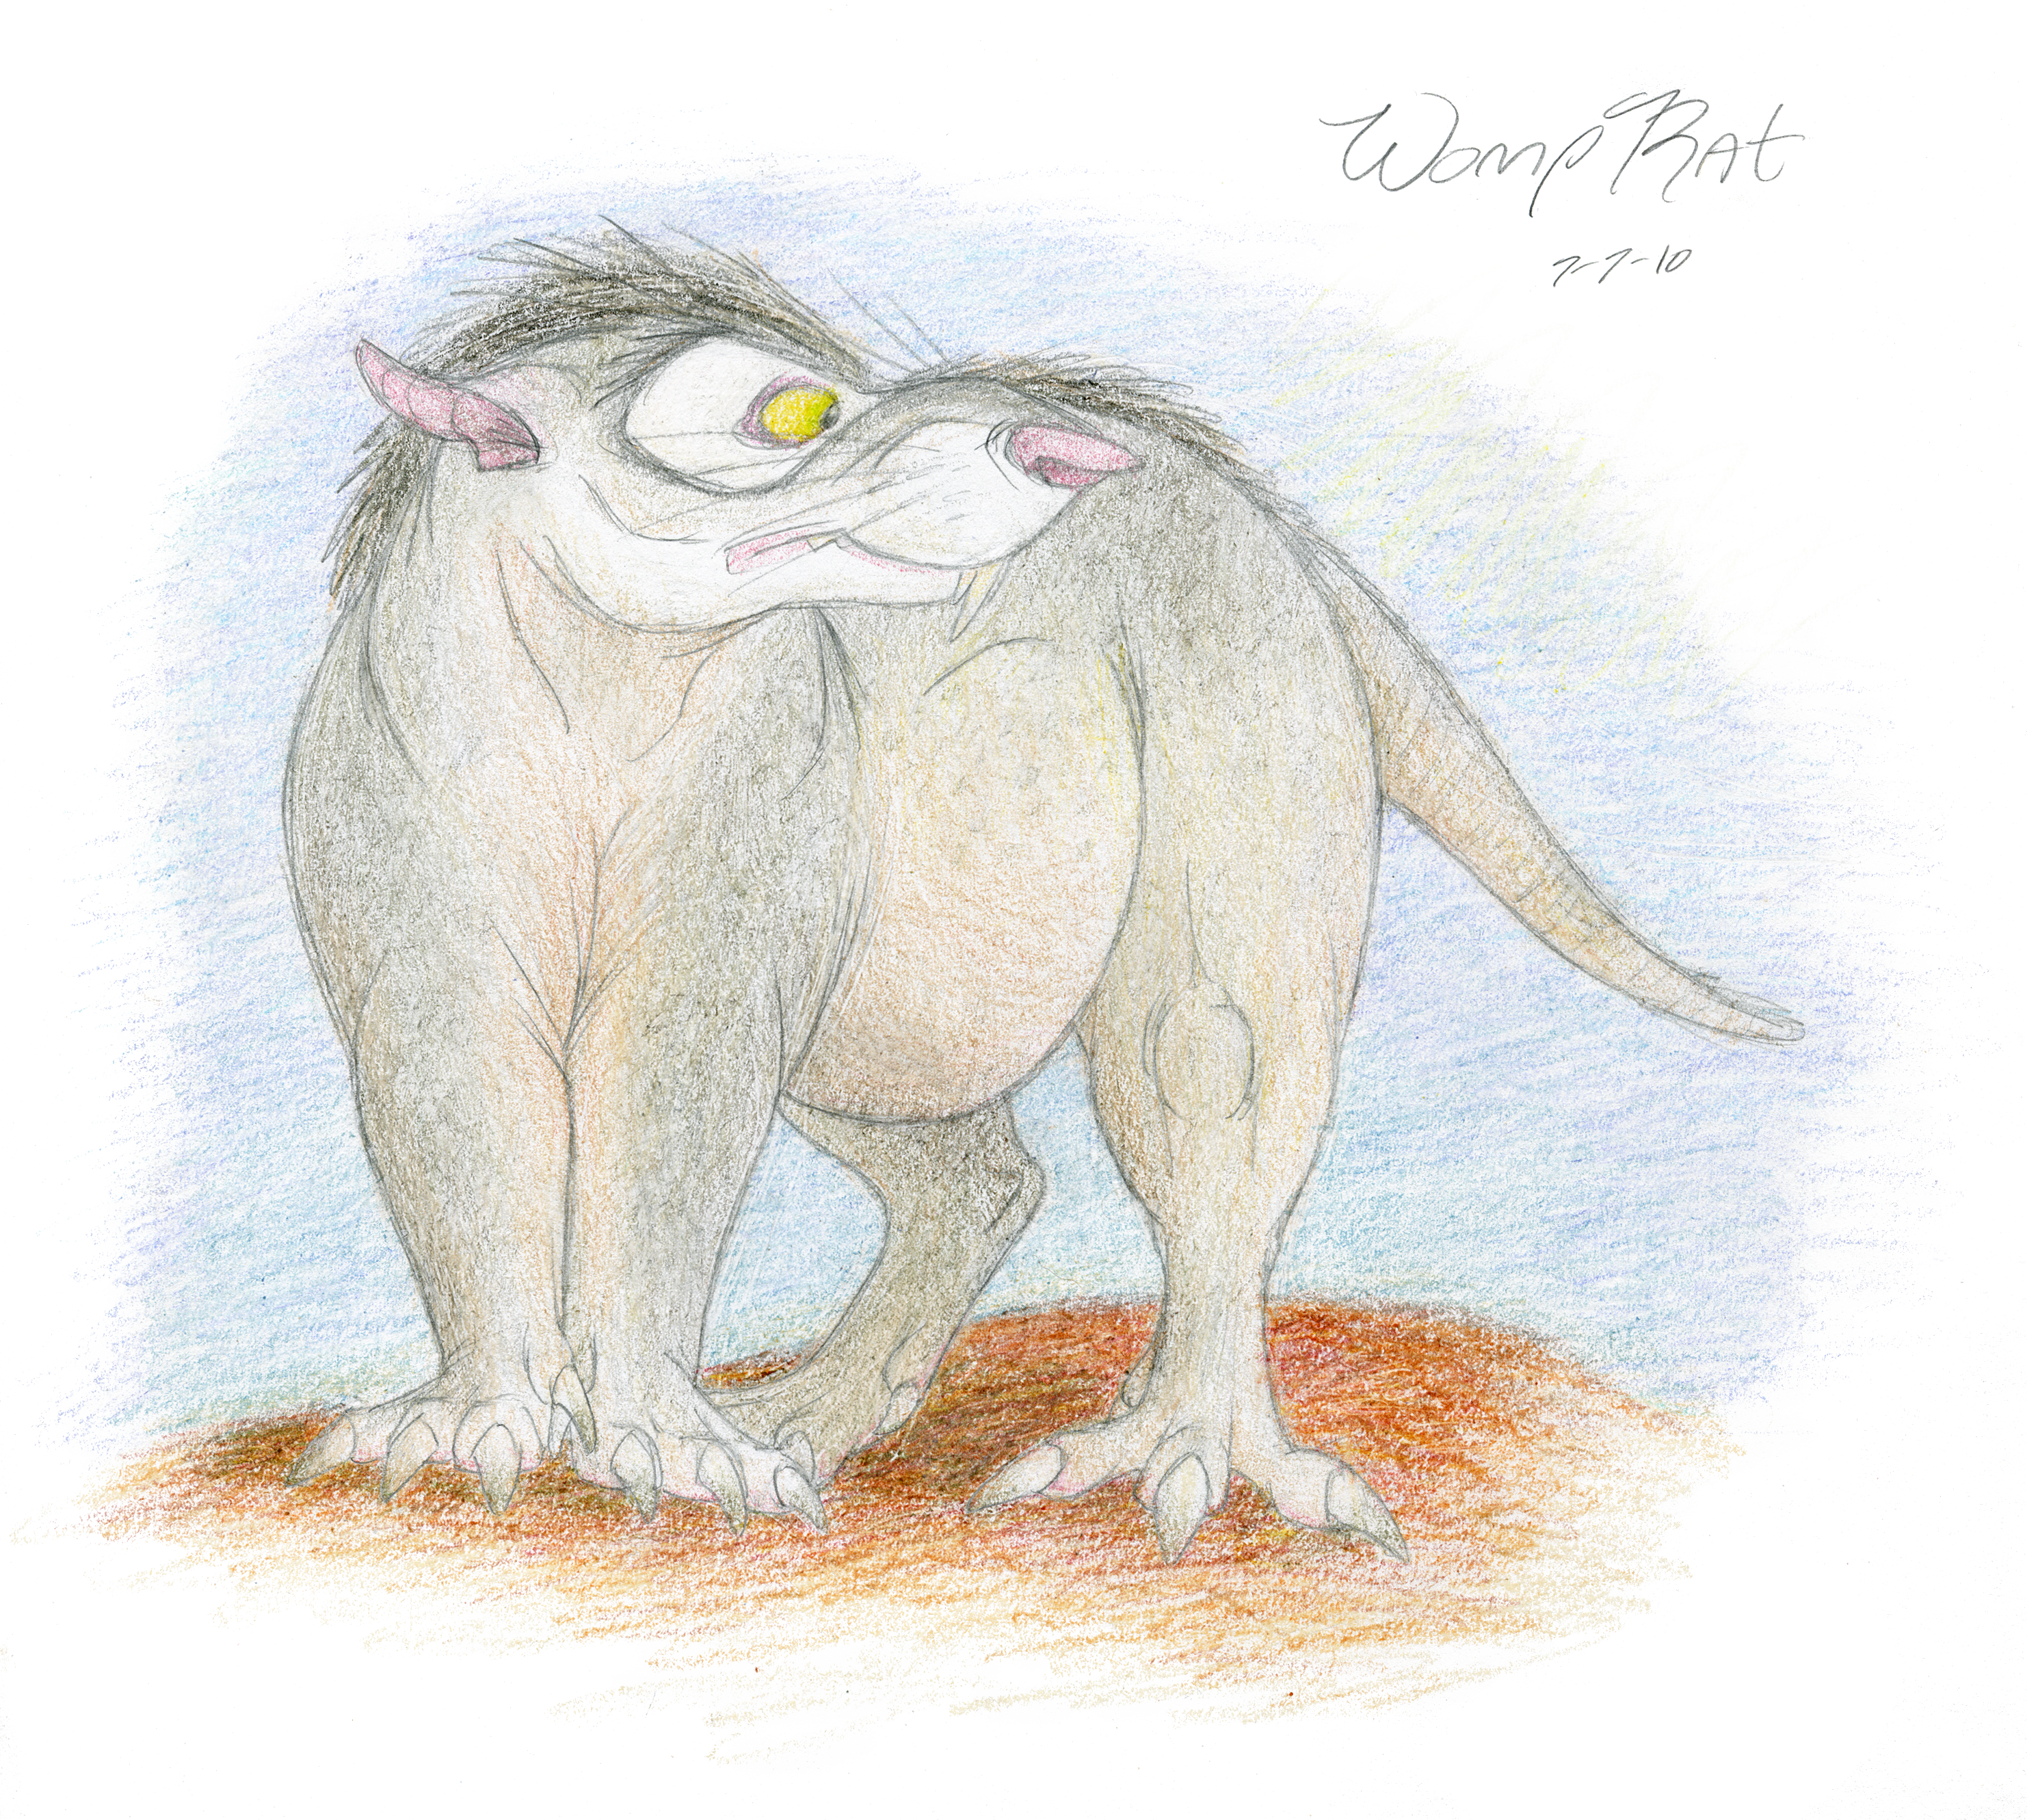 Womp Rat By Tymime On Newgrounds I didnt know but i believed jaba's womp rat at a name. newgrounds com